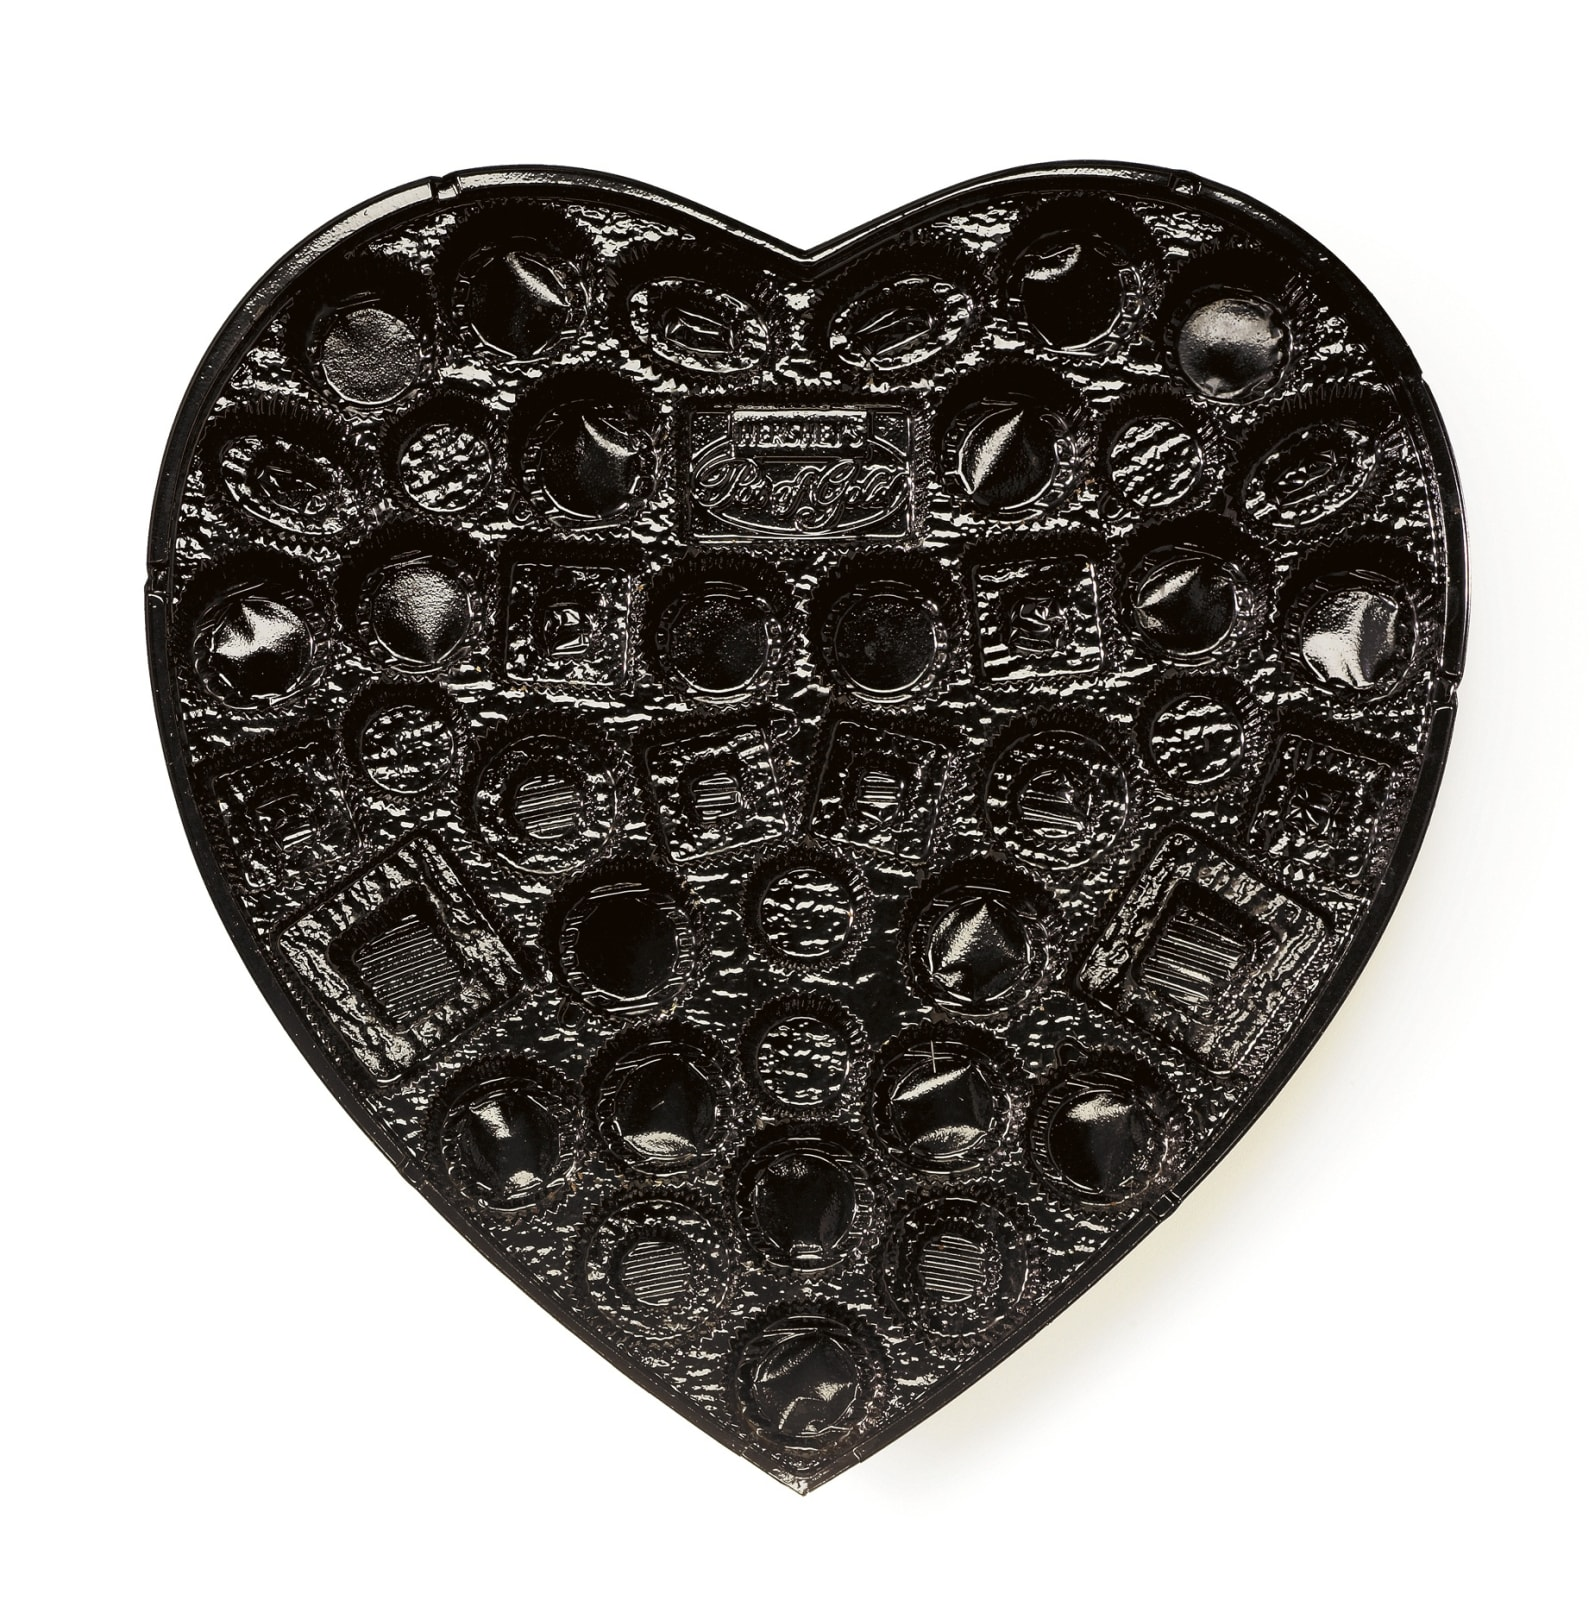 Chuck Ramirez Candy Tray: Black Heart, 2008